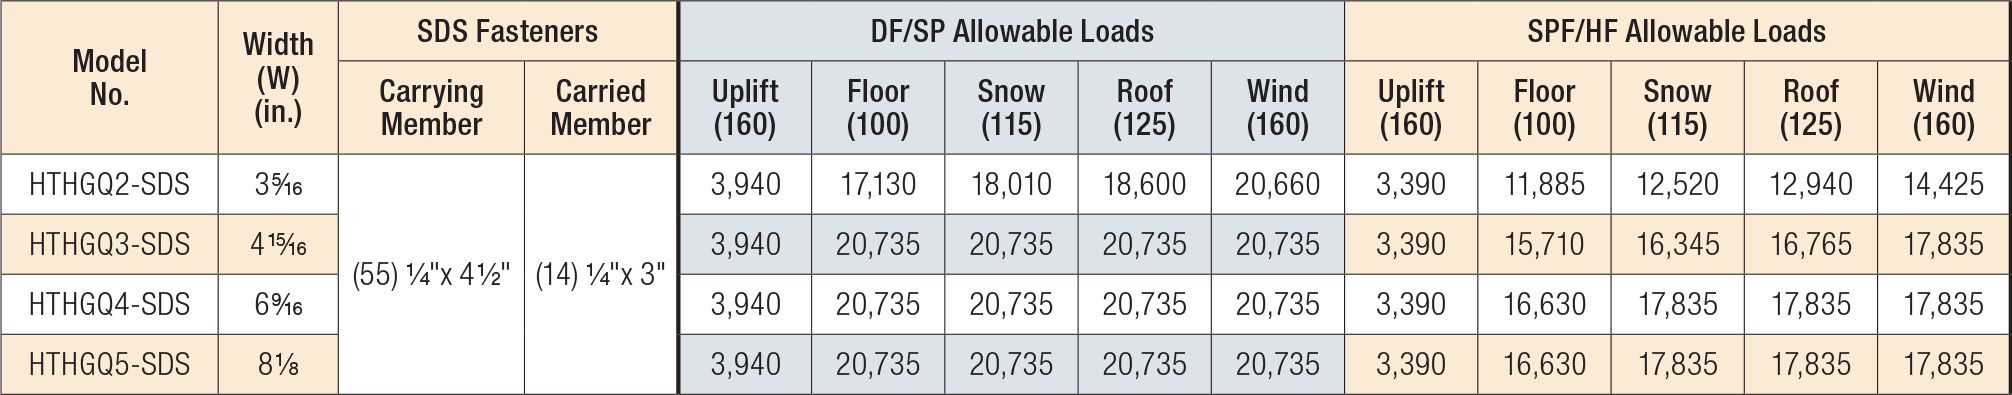 Allowable Loads for Heavy Multi-Ply Truss Girder